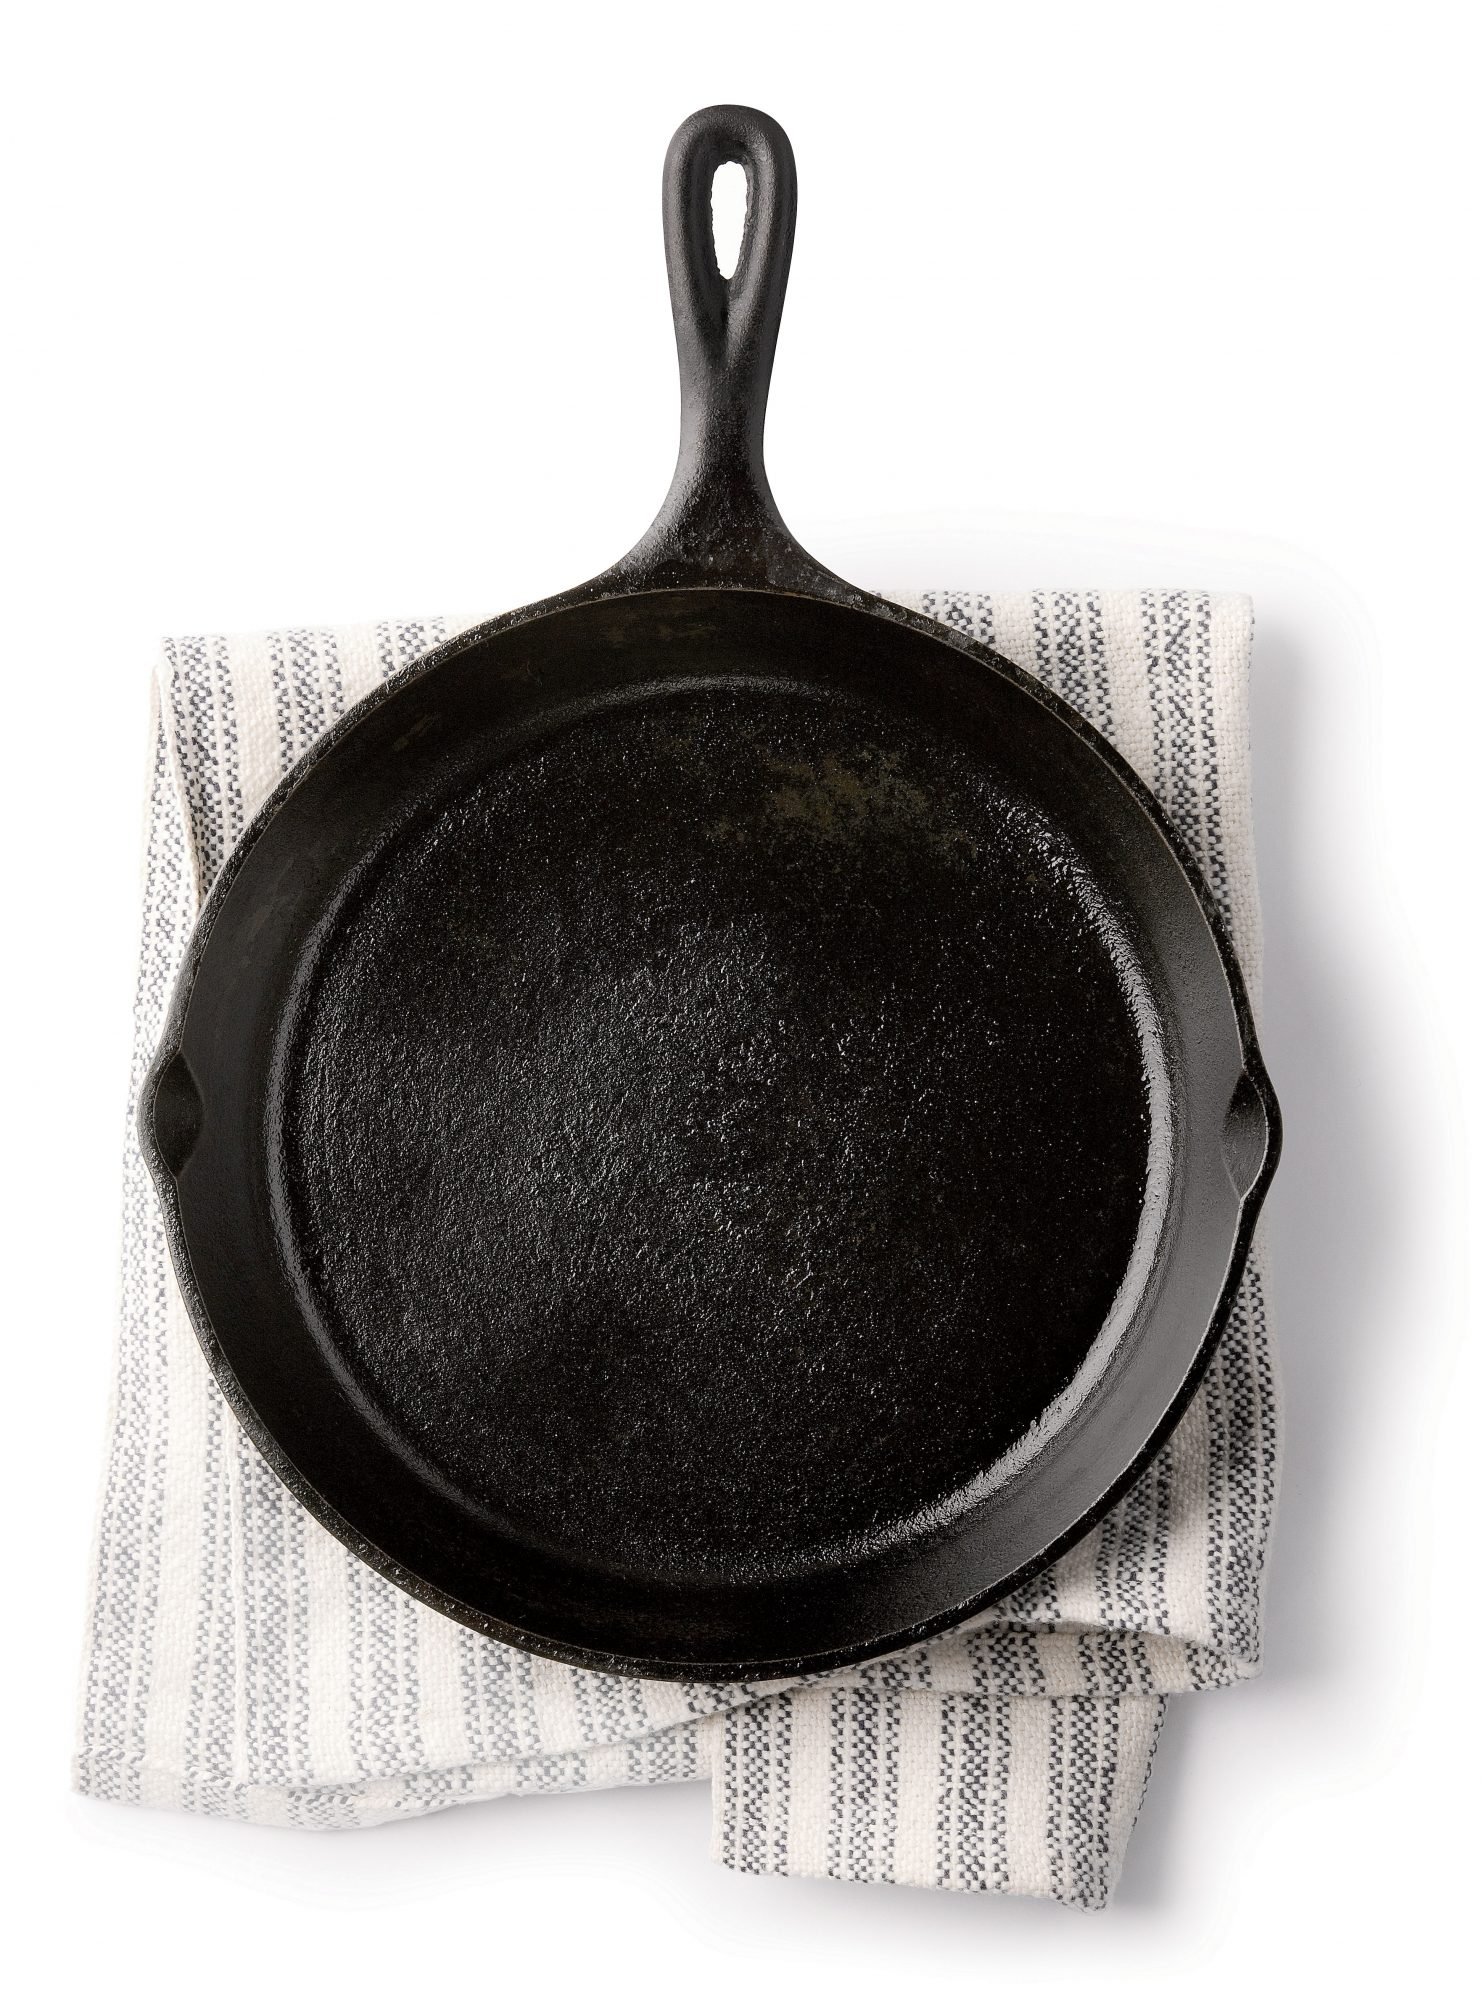 How To Season a Cast-iron Skillet